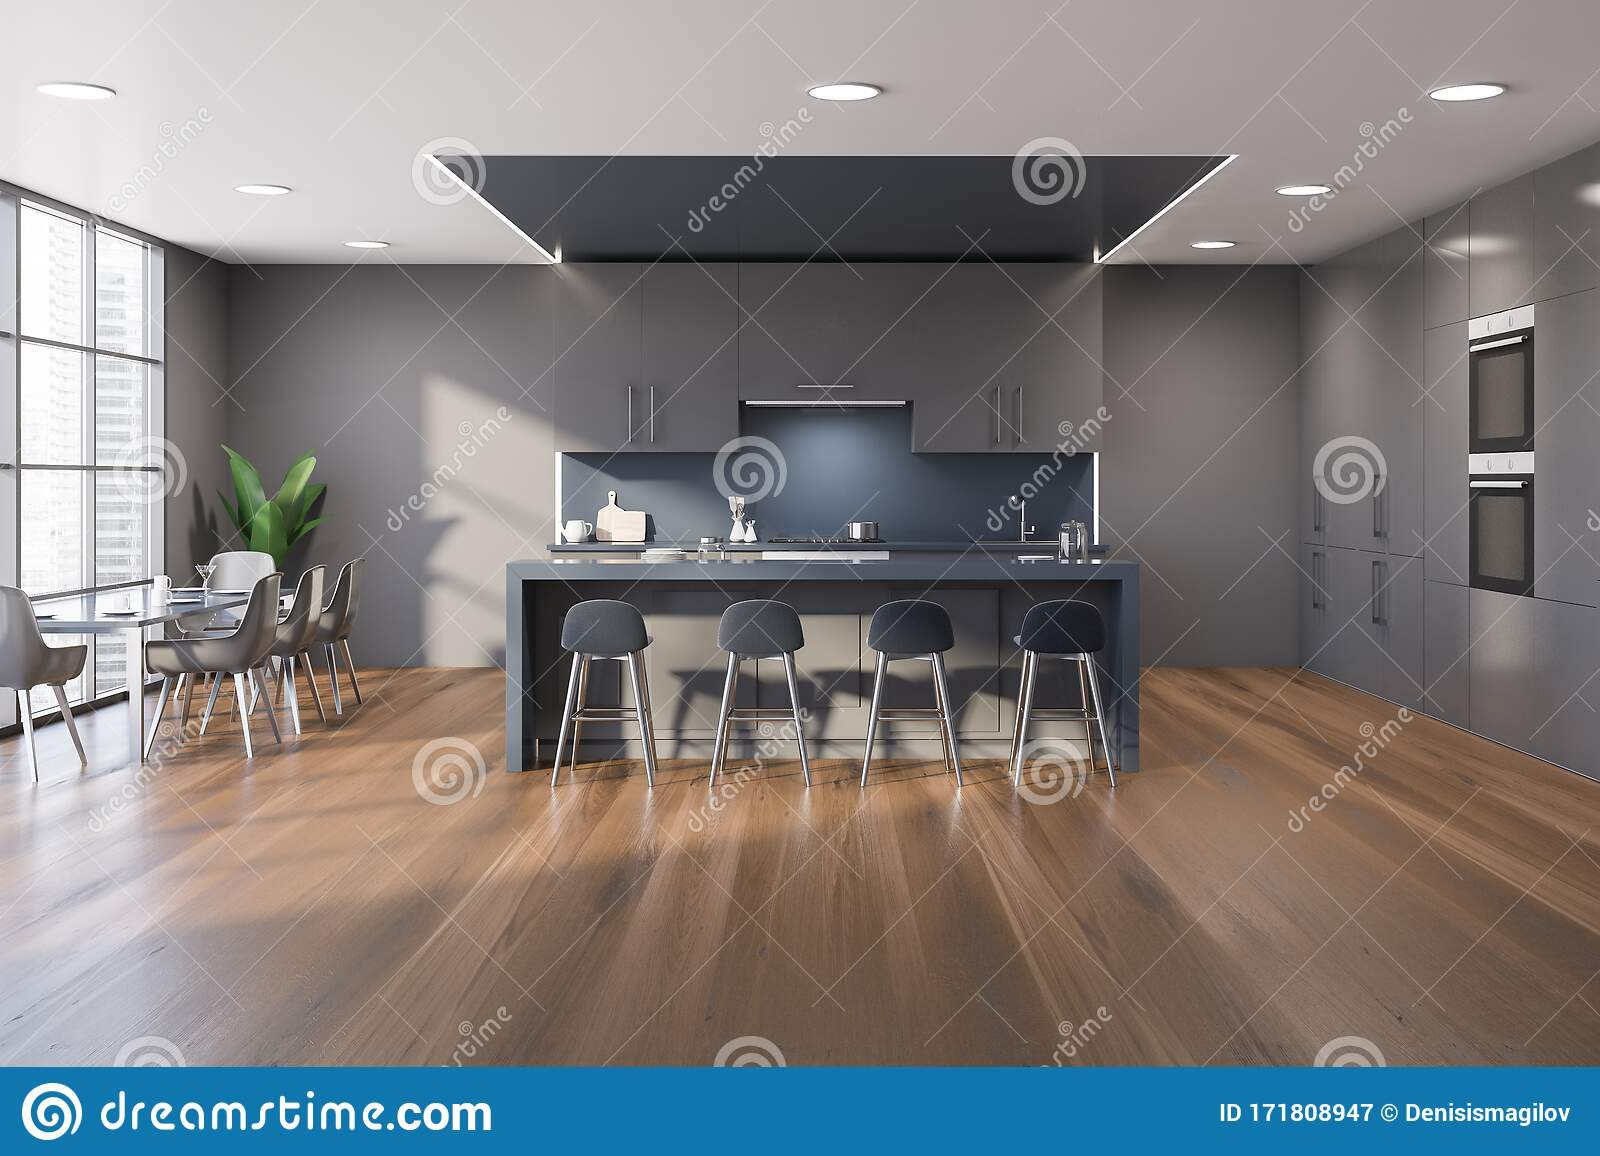 Gray And Blue Kitchen With Bar And Table Stock Illustration ...